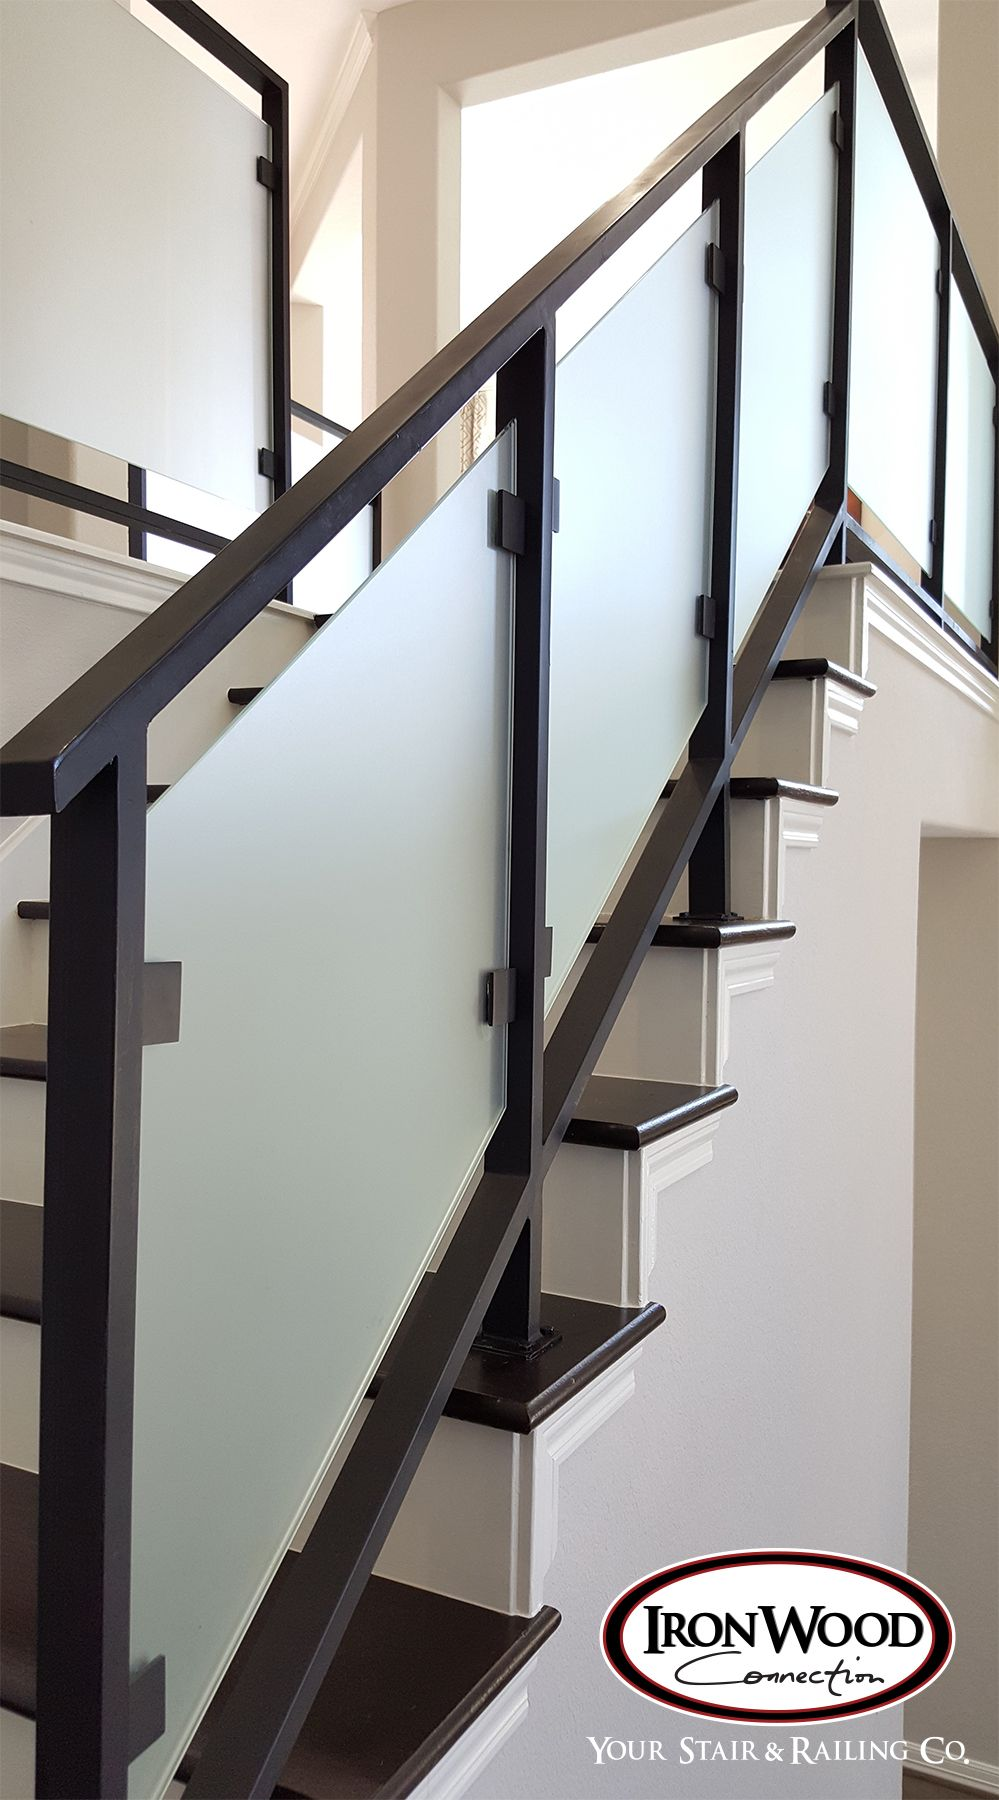 Glass And Wrought Iron Systems Are Designed Through Our Custom | Stair Railing Glass Panel | Tempered Glass | Wood | Stainless Steel Railing Systems | Base Shoe | Aluminum